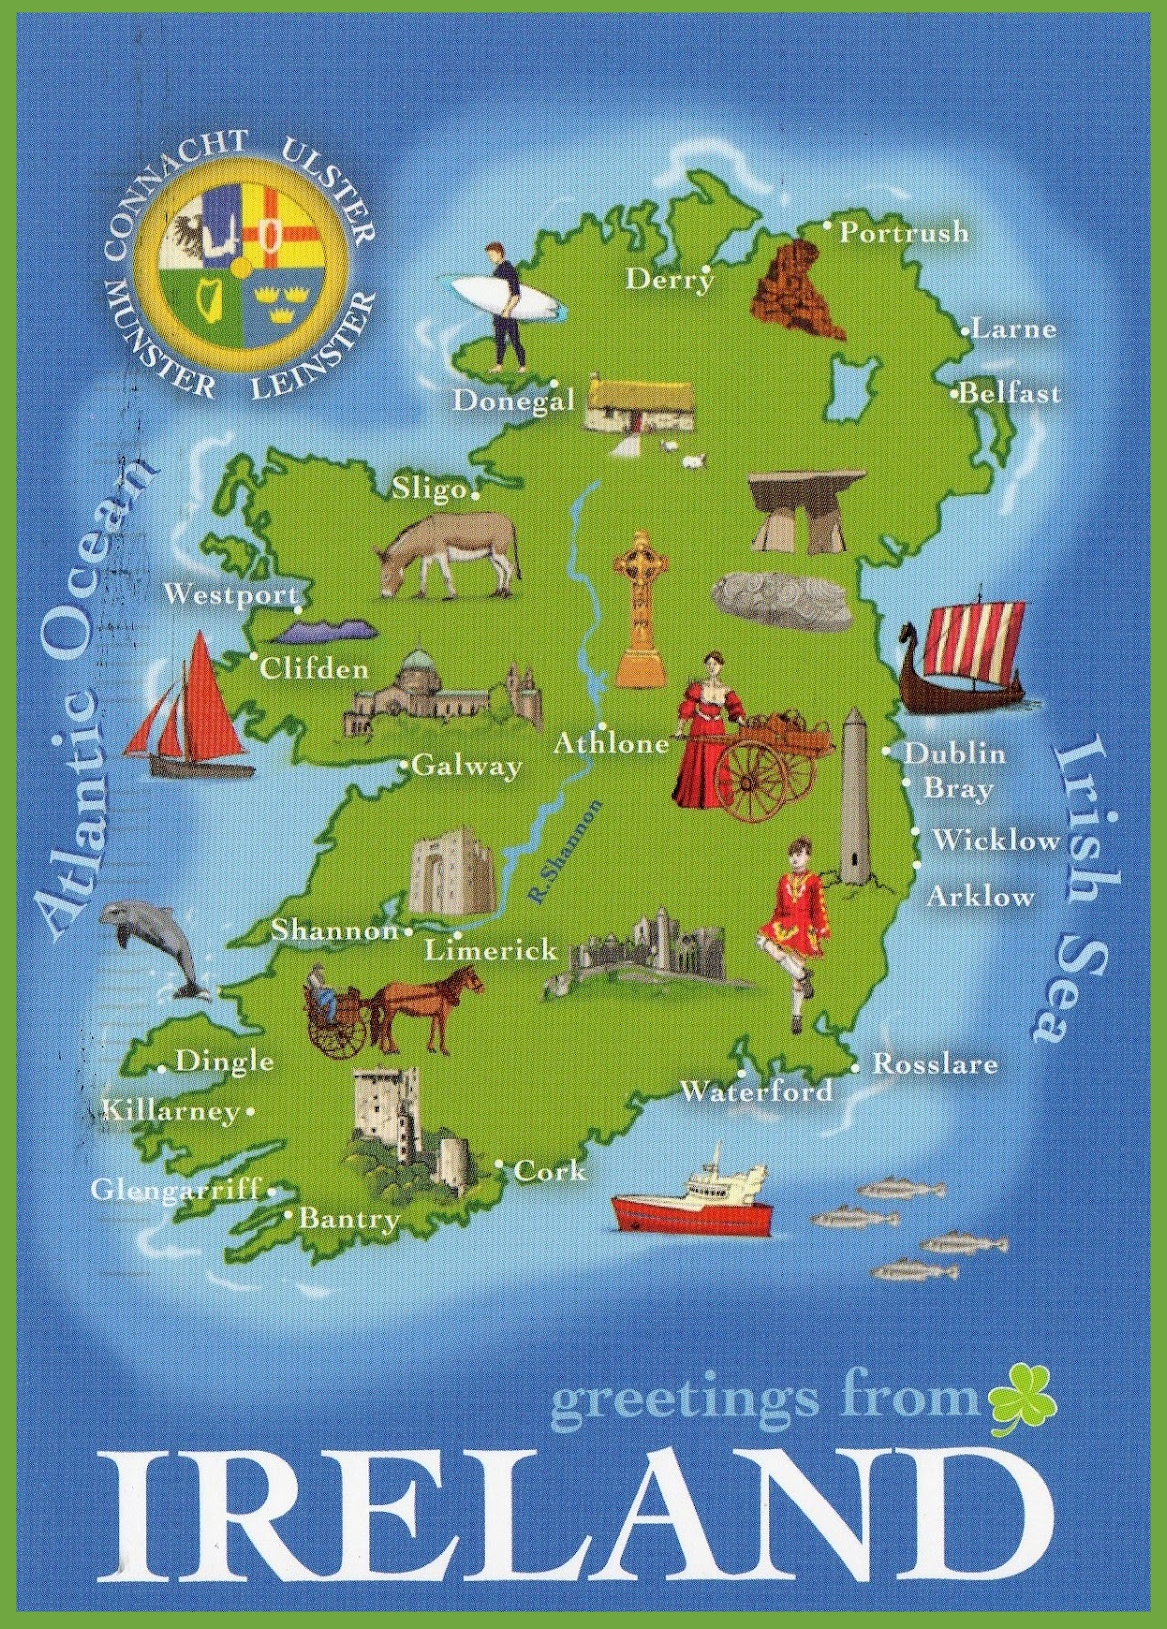 Ireland tourist map – Ireland Tourist Attractions Map